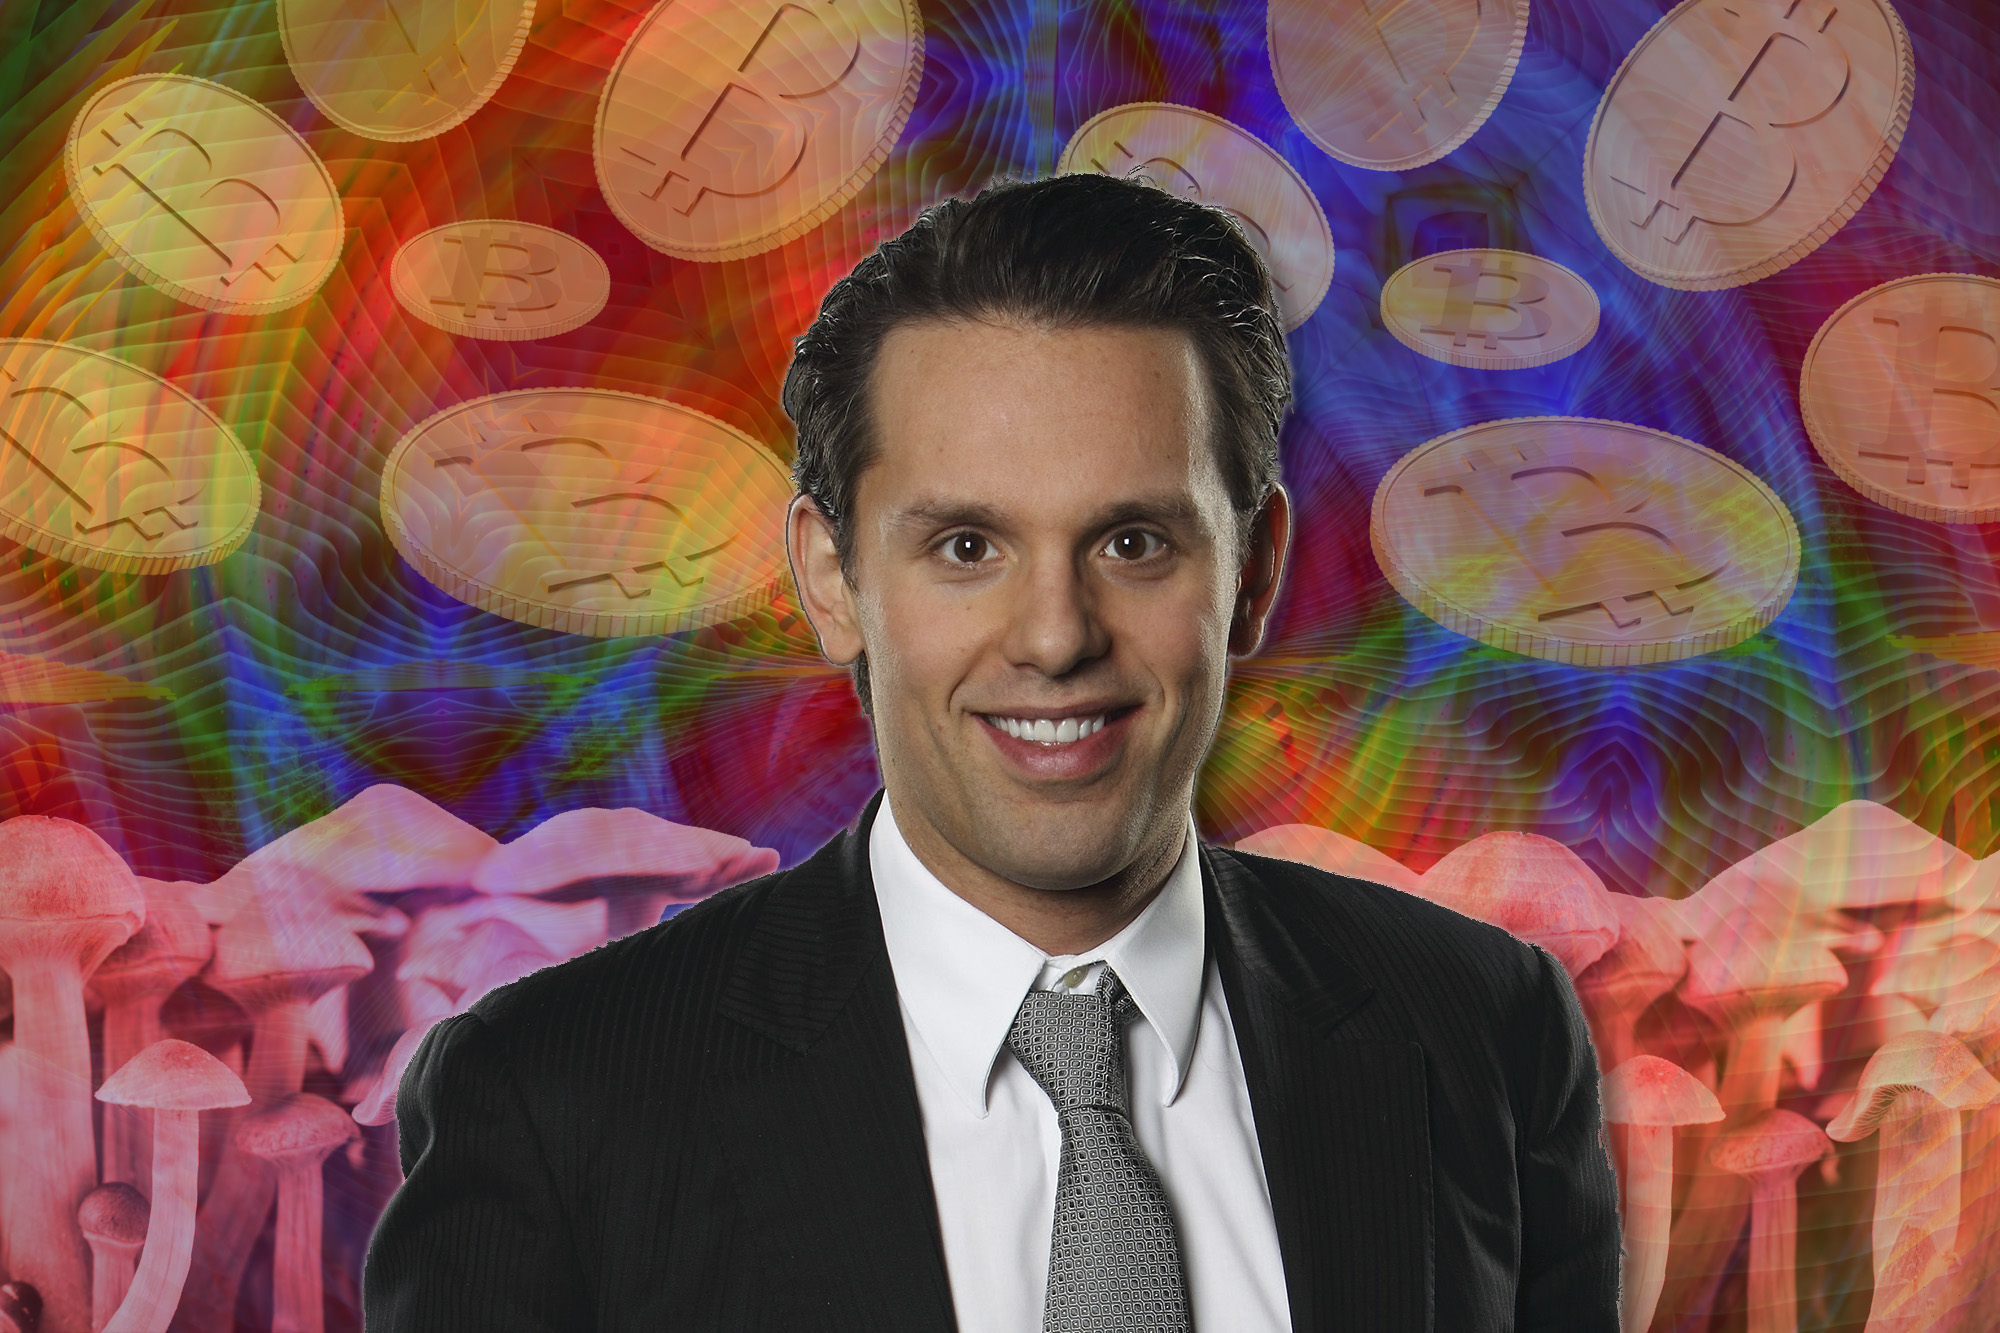 I took hallucinogenic mushrooms and made billions off bitcoin